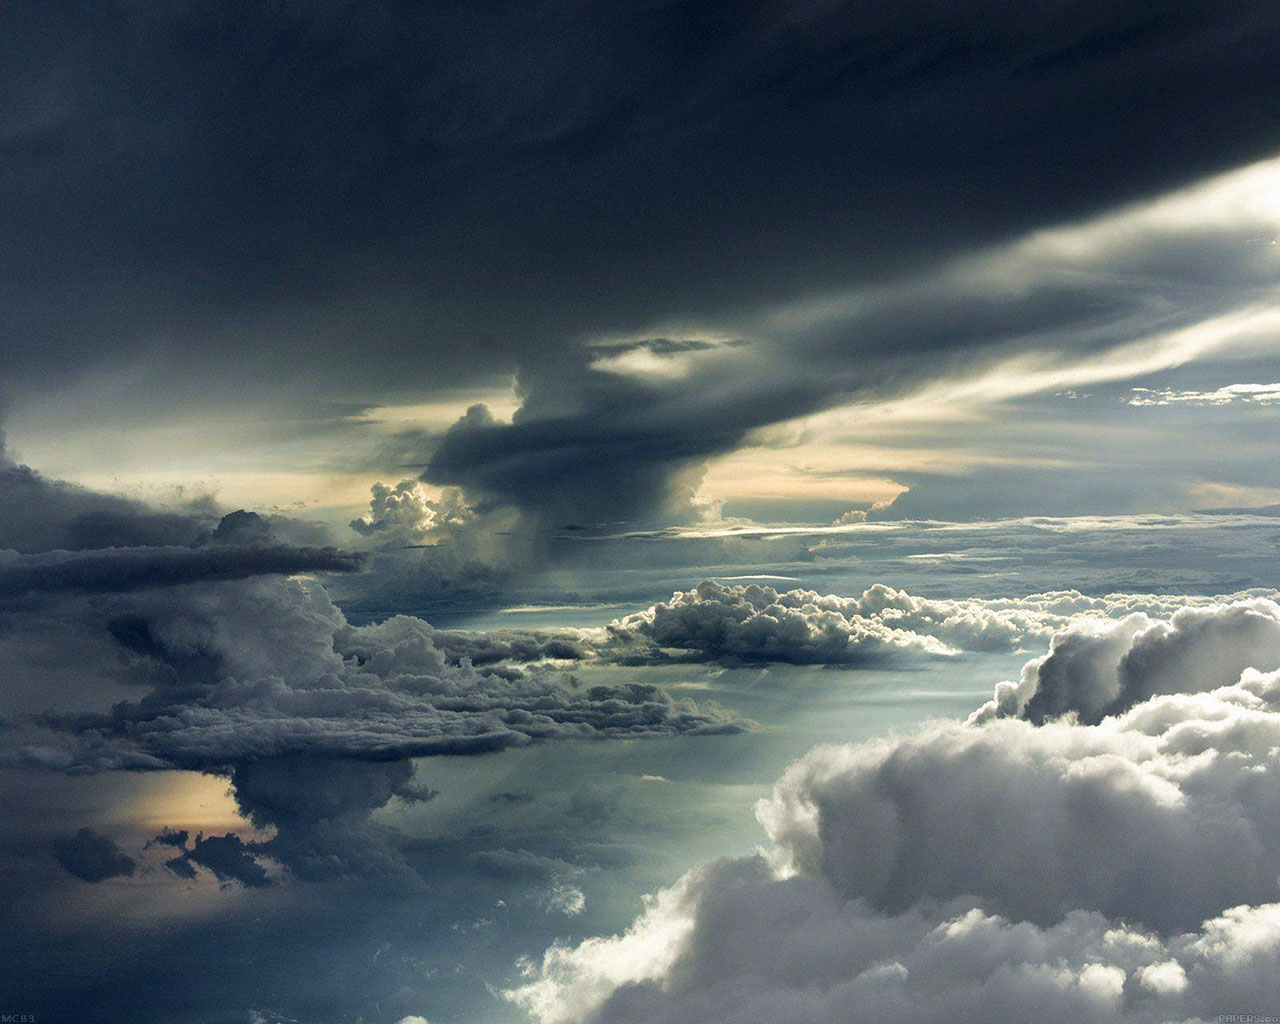 mc83-wallpaper-between-storm-clouds-sky-wallpaper